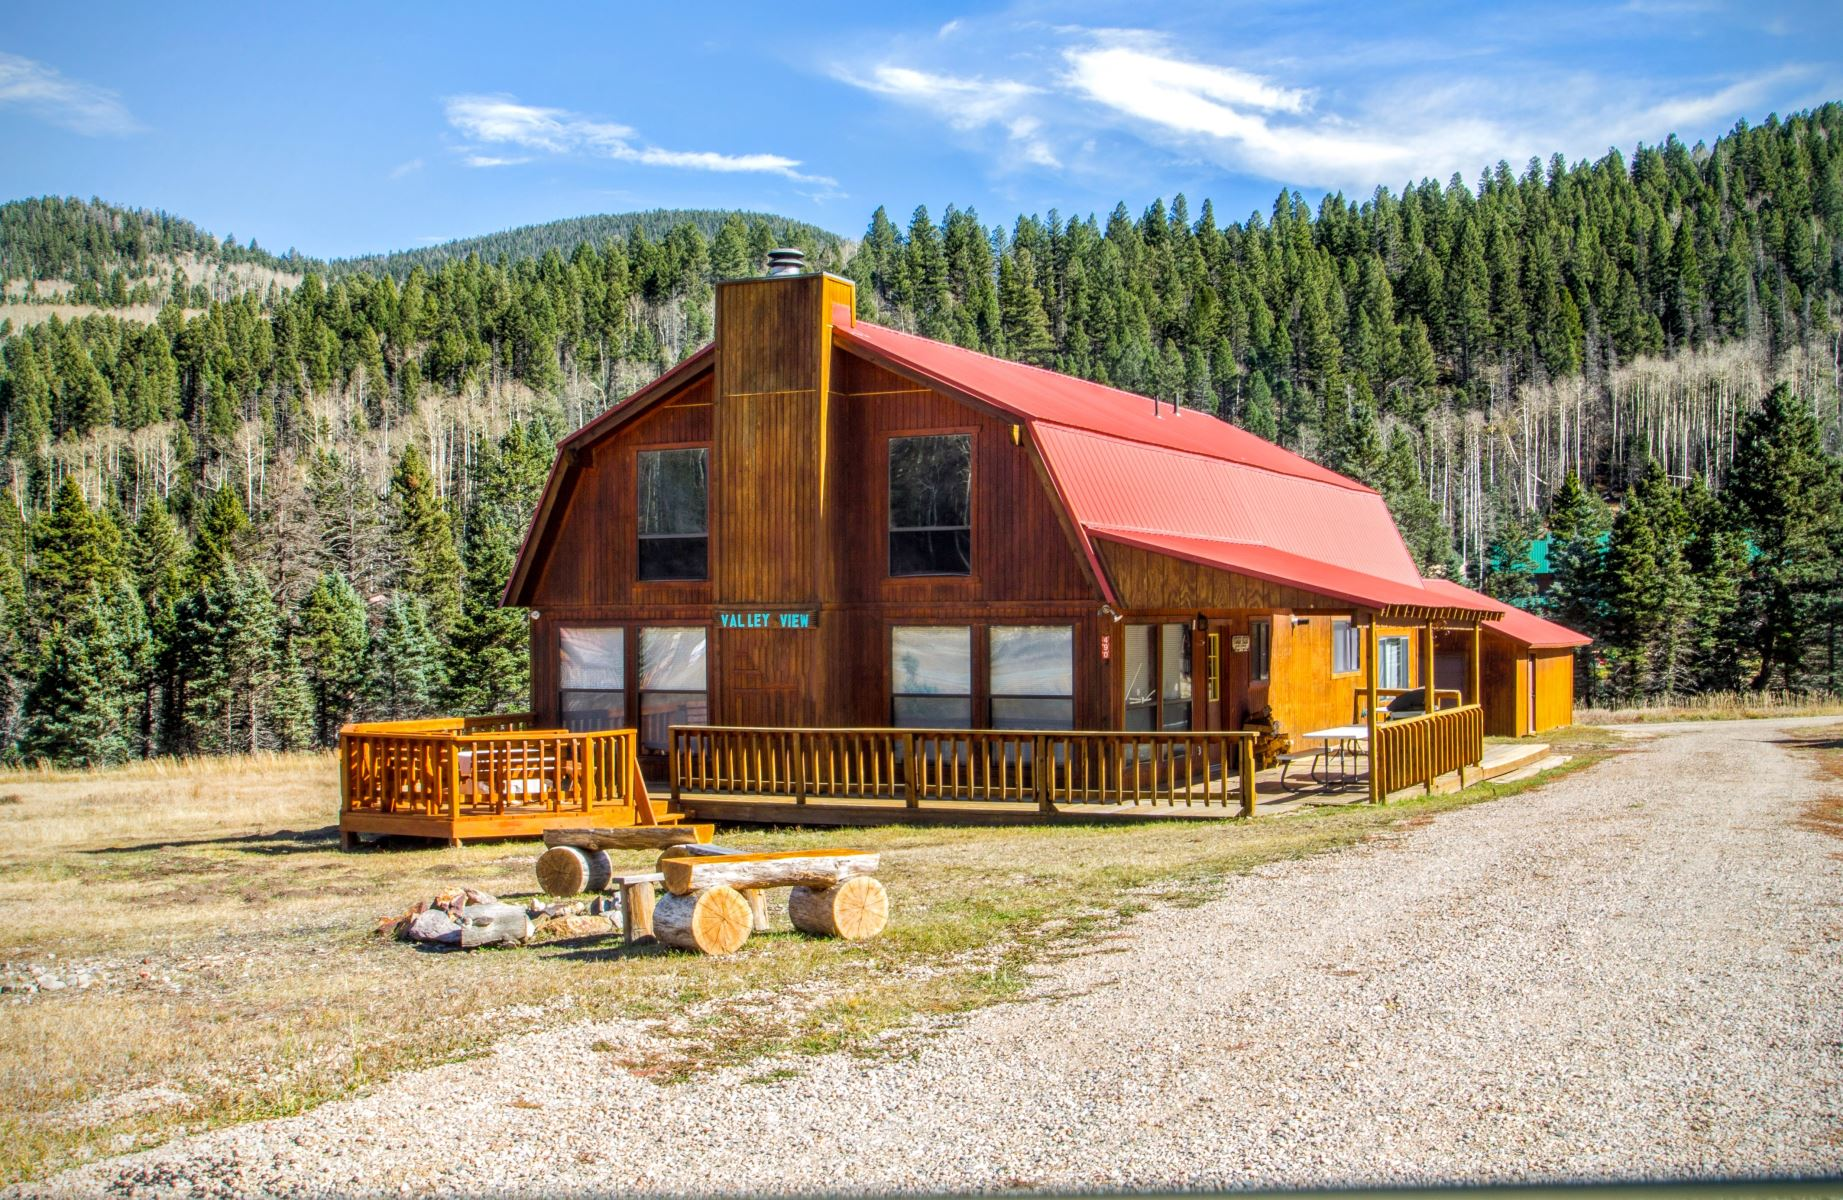 estate cabins rally river s day memorial bike and resort real nm red realty lodging category